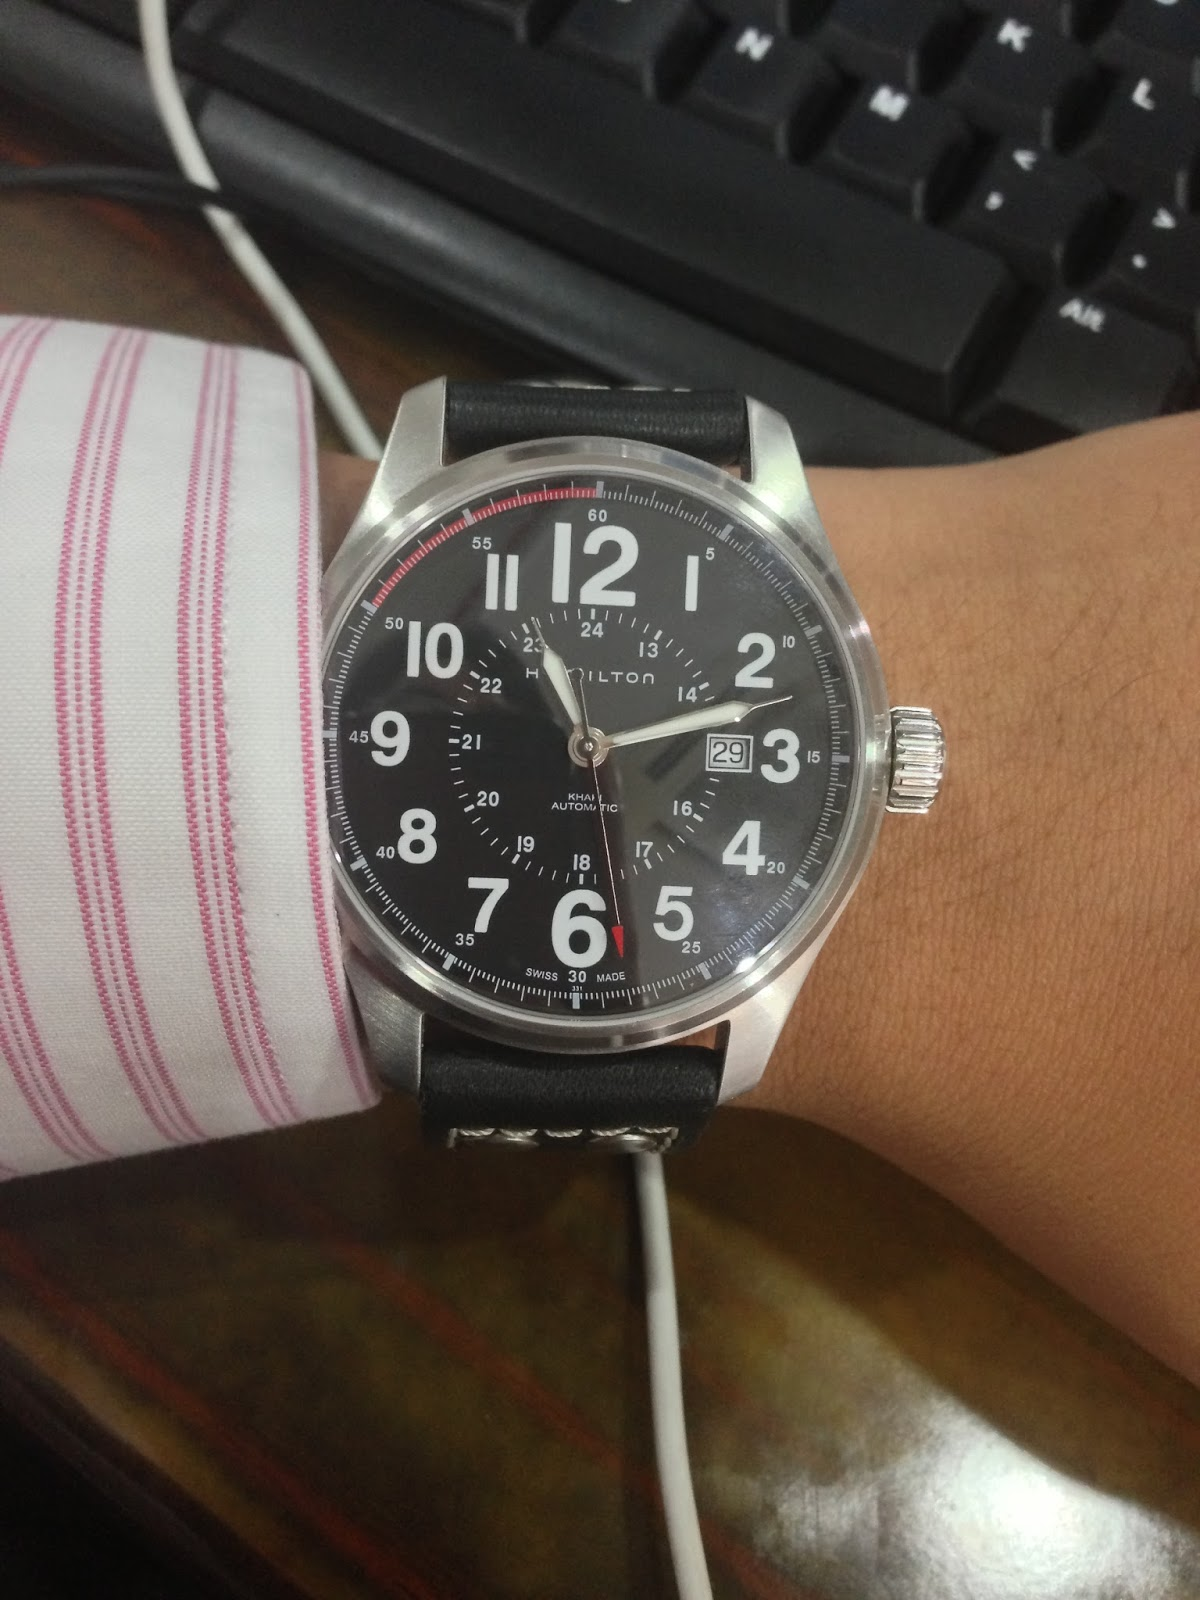 we styling the watches wearing primer timex were wide spend now right affordable re